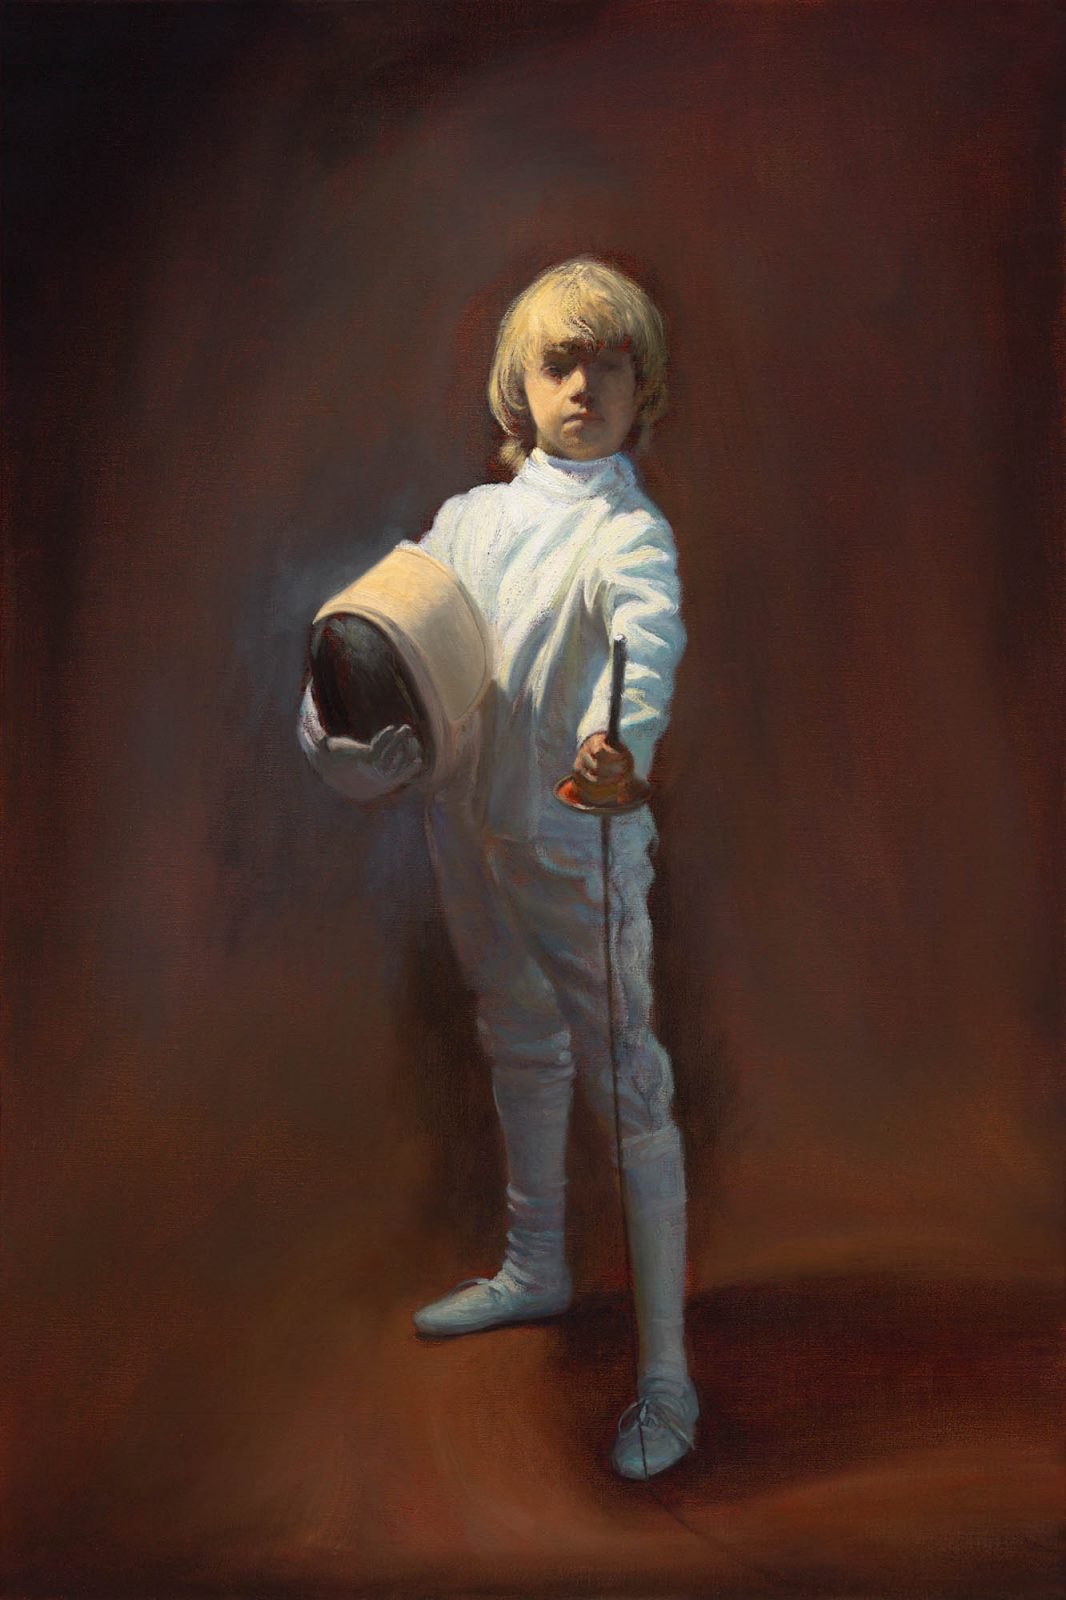 Paul Chizik - Boy in White - Study. Oil on Linen 24 x 36 inches